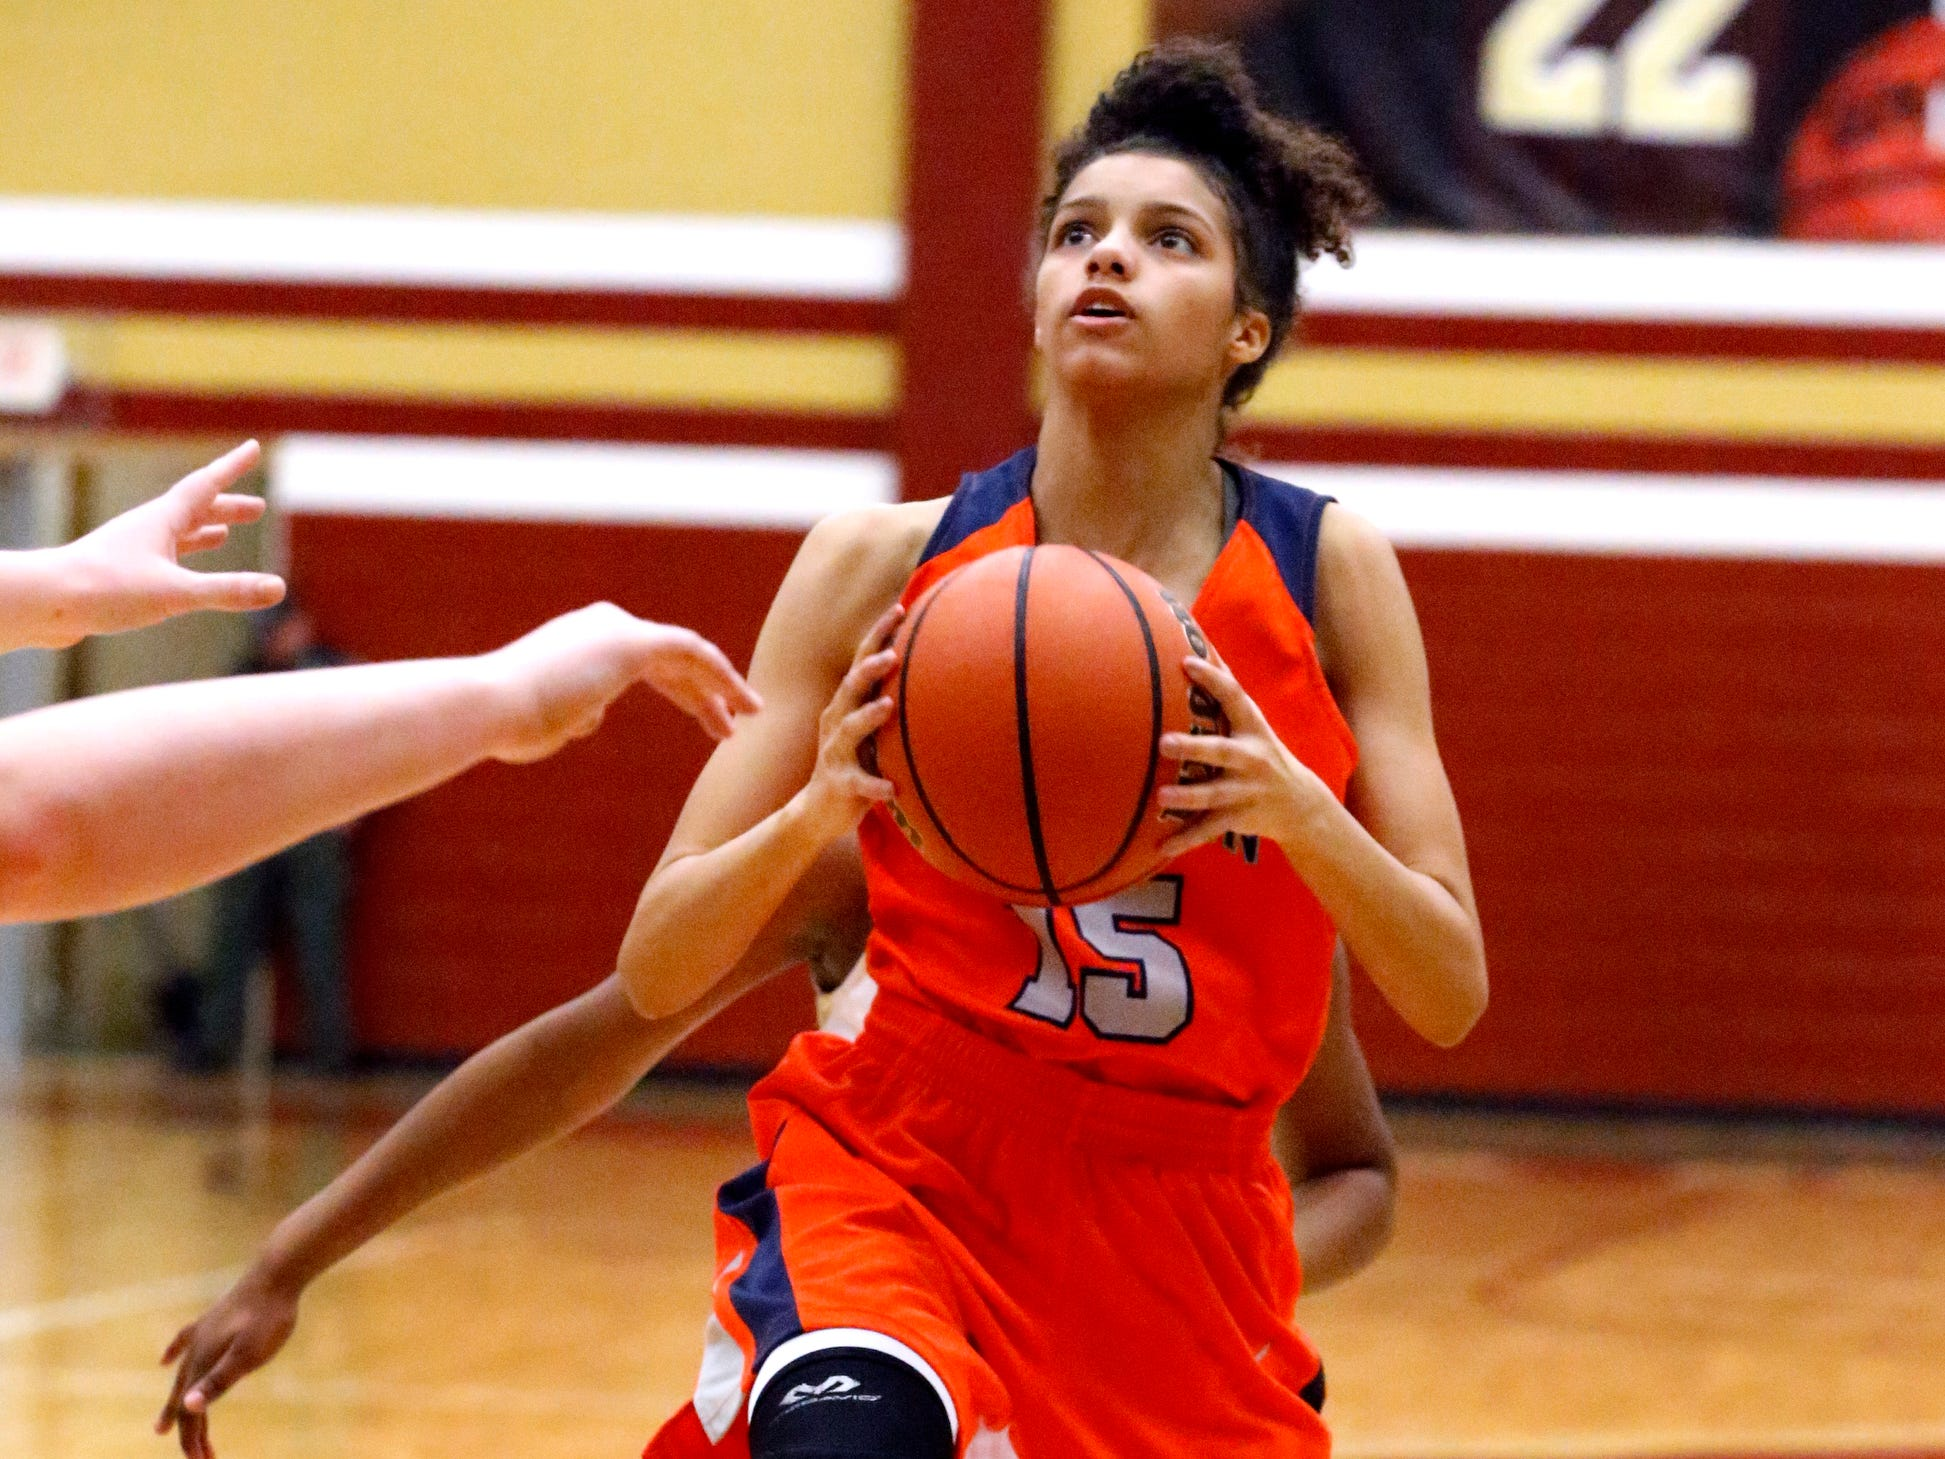 Blackman's Victoria Page (15) goes up for a shot during the game against Riverdale on Tuesday Jan. 8, 2019